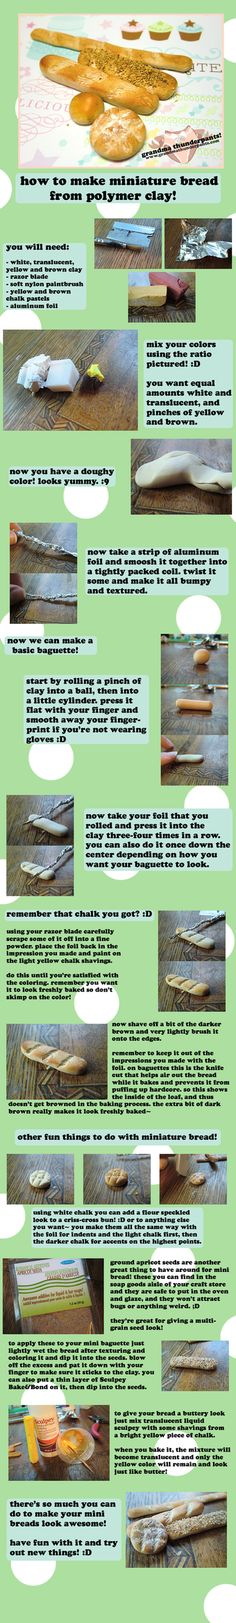 Miniature Clay Bread TUTORIAL by *sarah-chan on deviantART